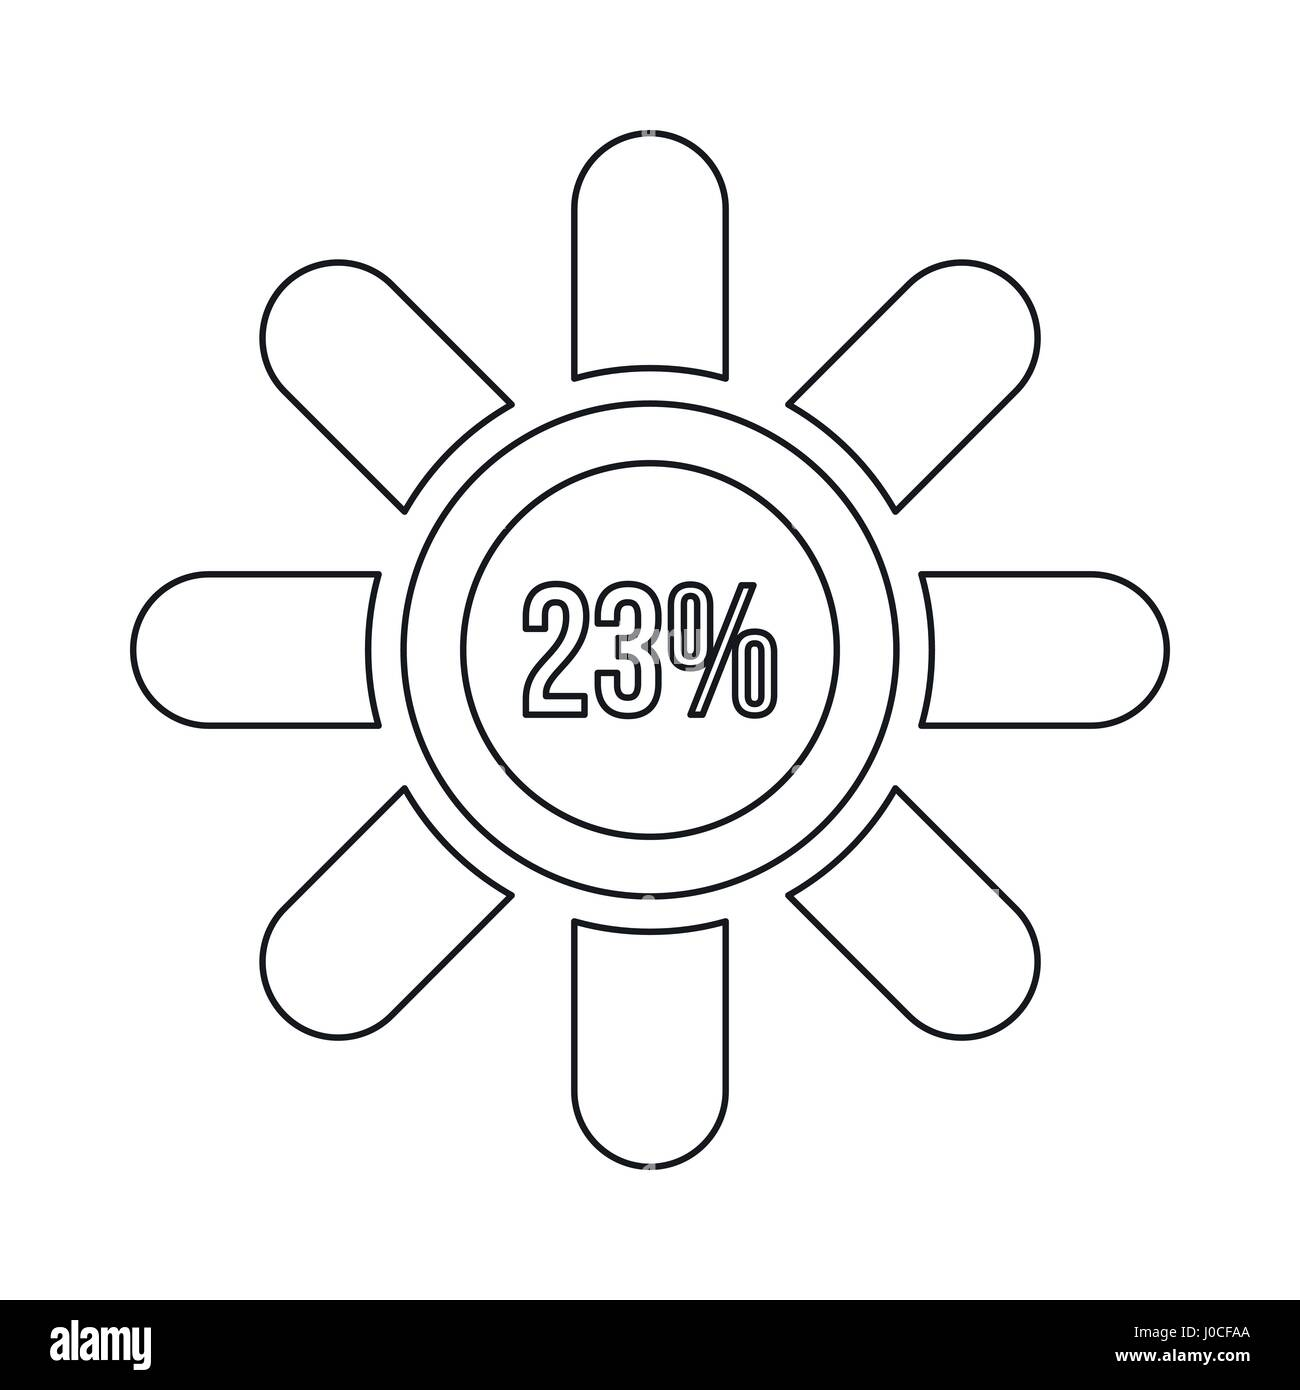 Sign 23 load icon, outline style - Stock Image